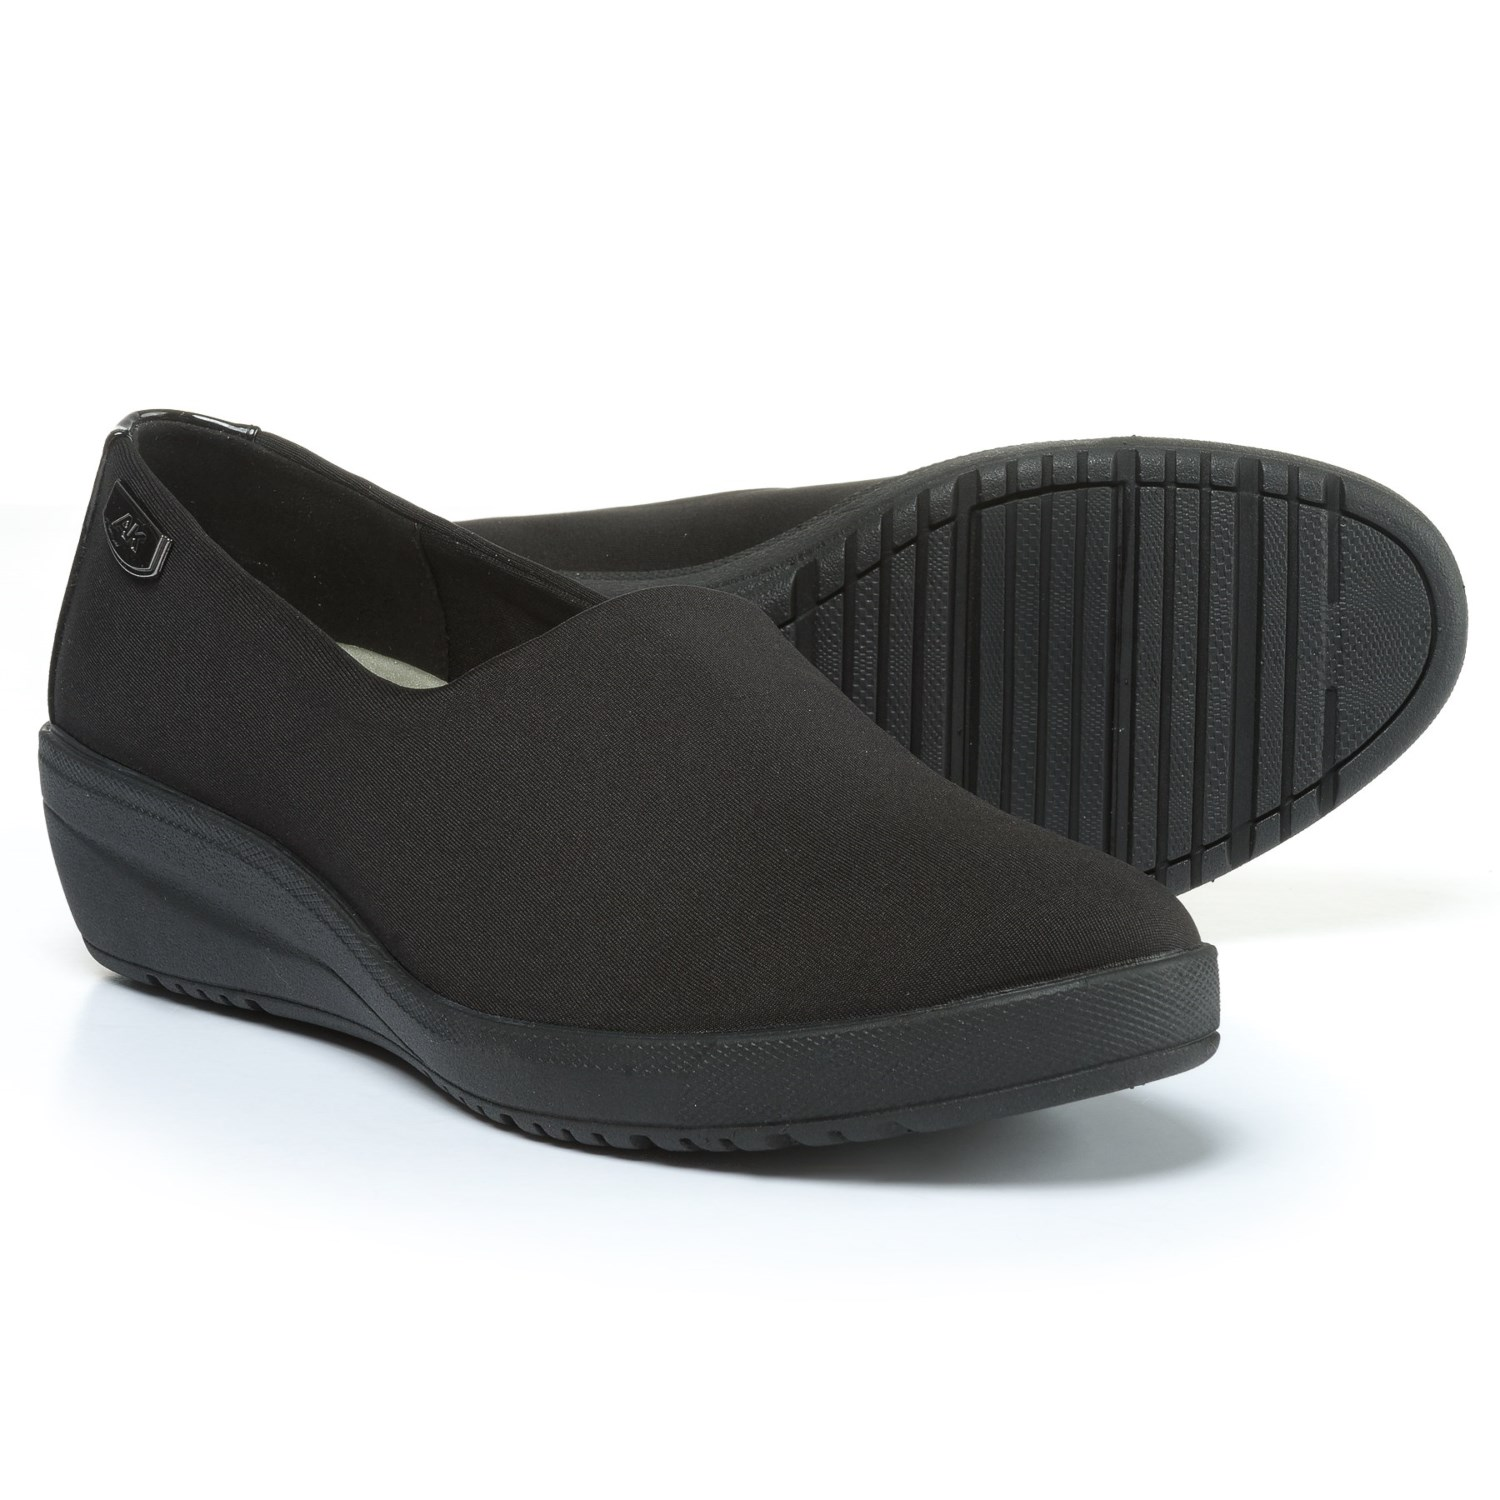 These shoes are really nice as as expected from LifeStride, very comfortable. I like the cork covered wedge, which to me allows these to be dressed up a bit more than traditional espadrilles.